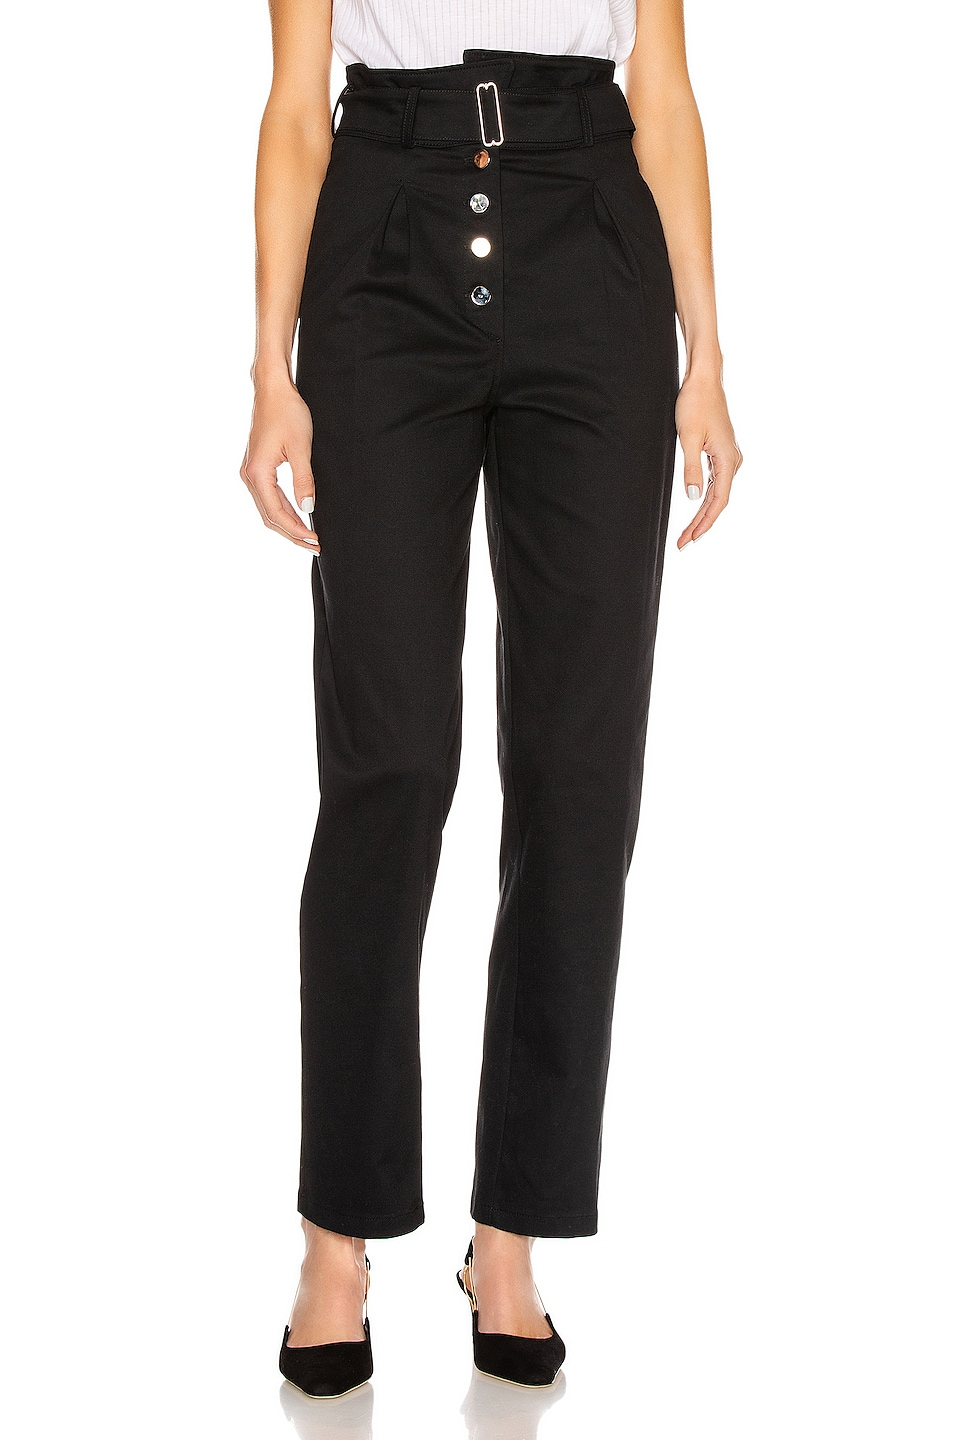 Image 1 of The Range Structured Twill Belted Paperbag Pants in Black